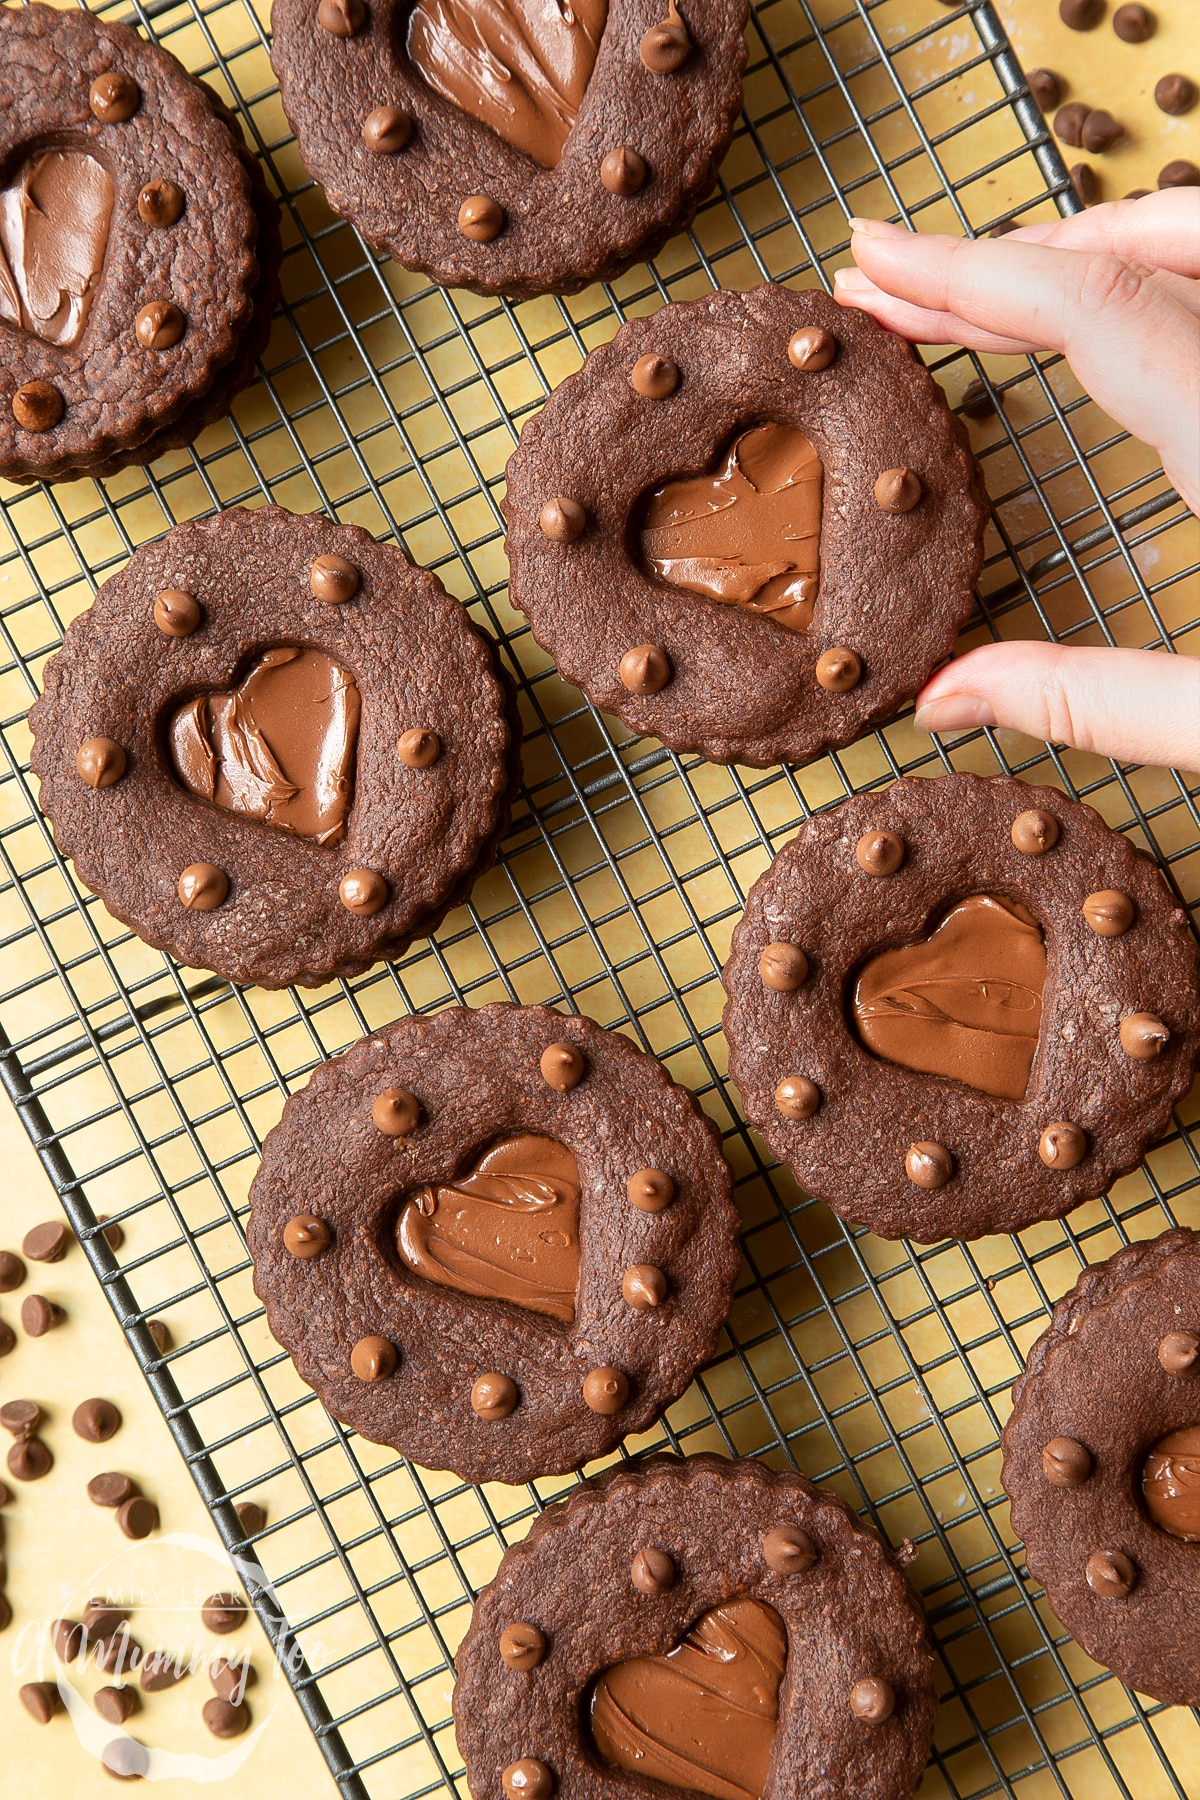 Nutella sandwich cookies on a cooling rack. A hand reaches to take one.